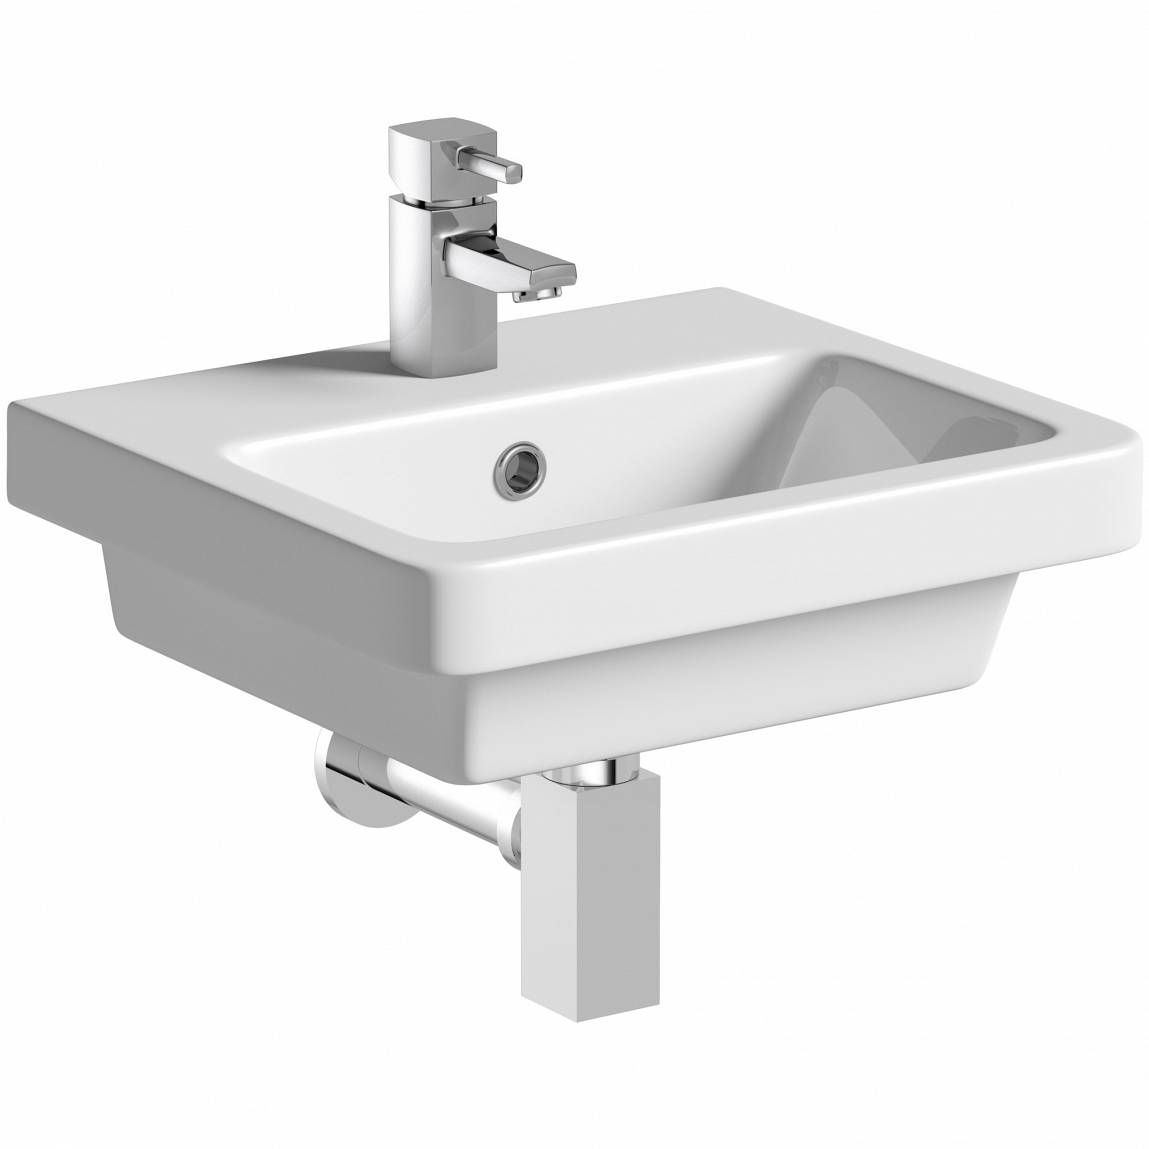 Mode Cooper 1 Tap Hole Wall Hung Basin 400mm With Waste Back To Wall Toilets Wall Mounted Basins Small Basin